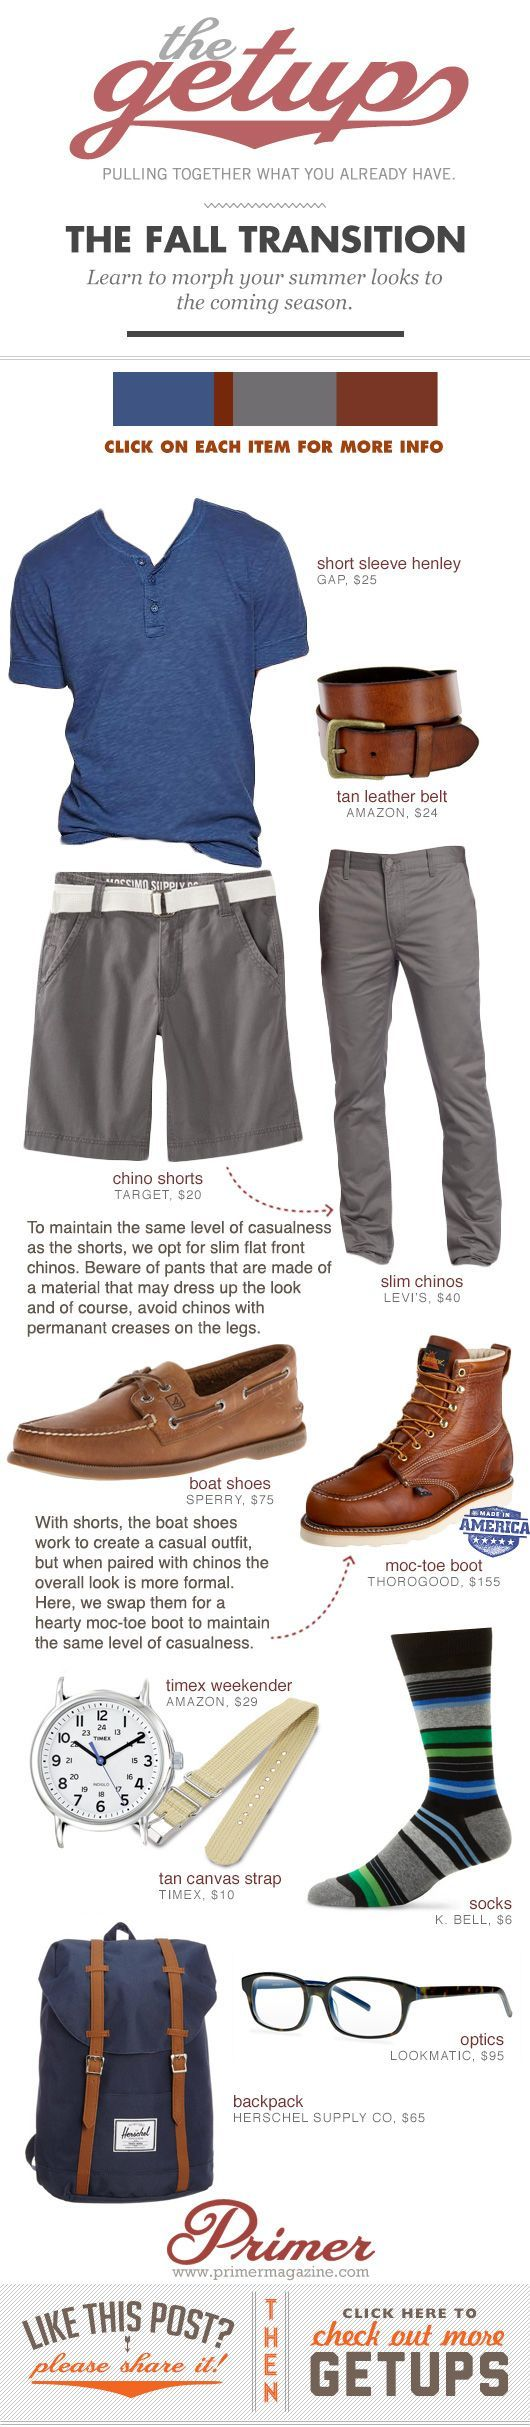 Fall Getup Week: The Fall Transition primermagazine.com